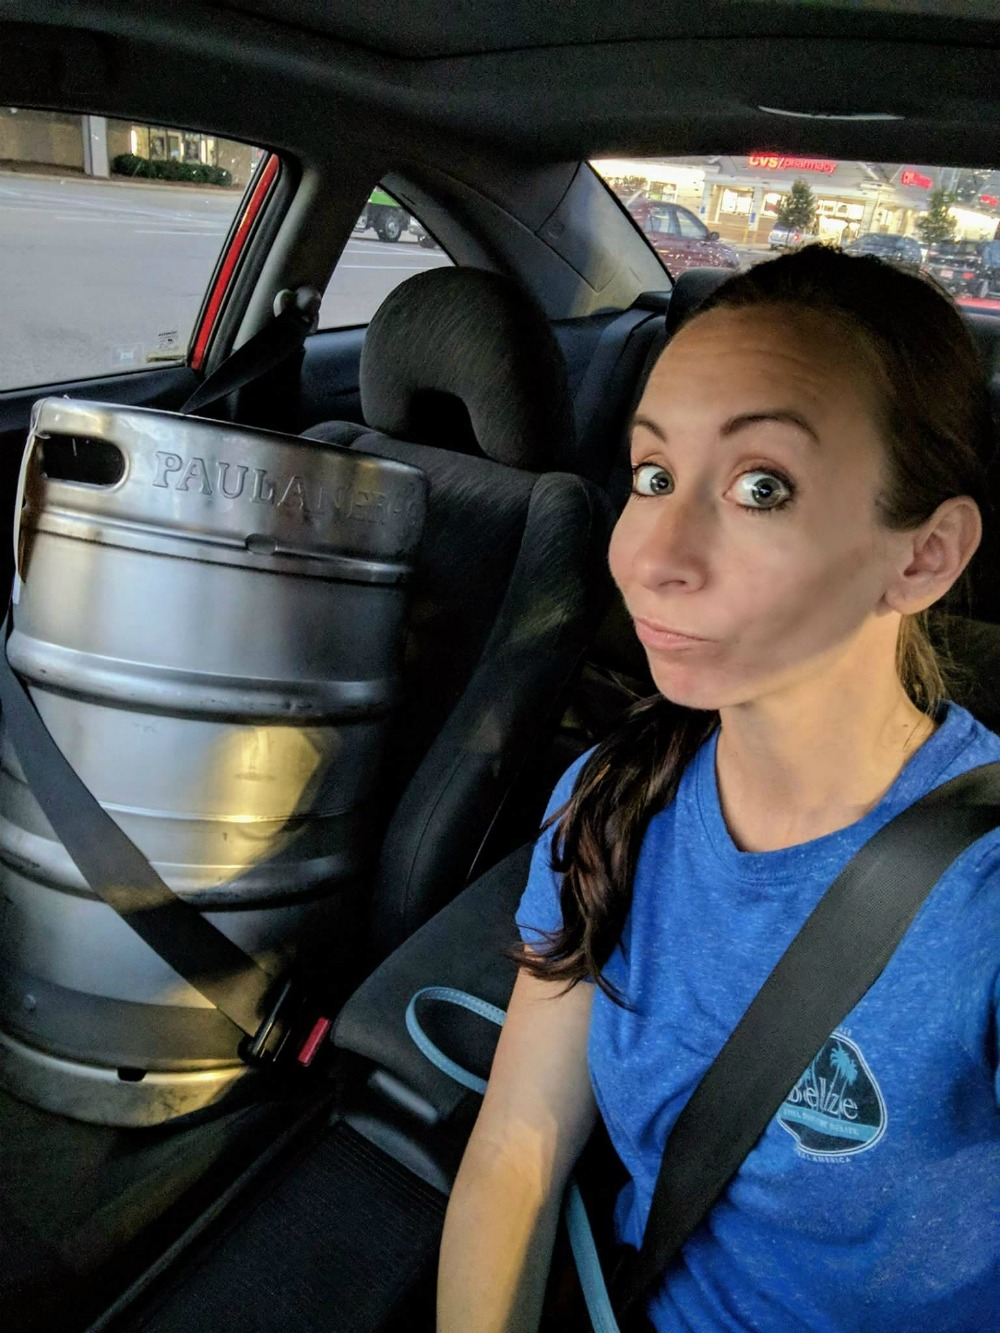 Oktoberfest party beer: What kind of beer to serve at your oktoberfest party | Getting a keg of Paulaner Oktoberfest